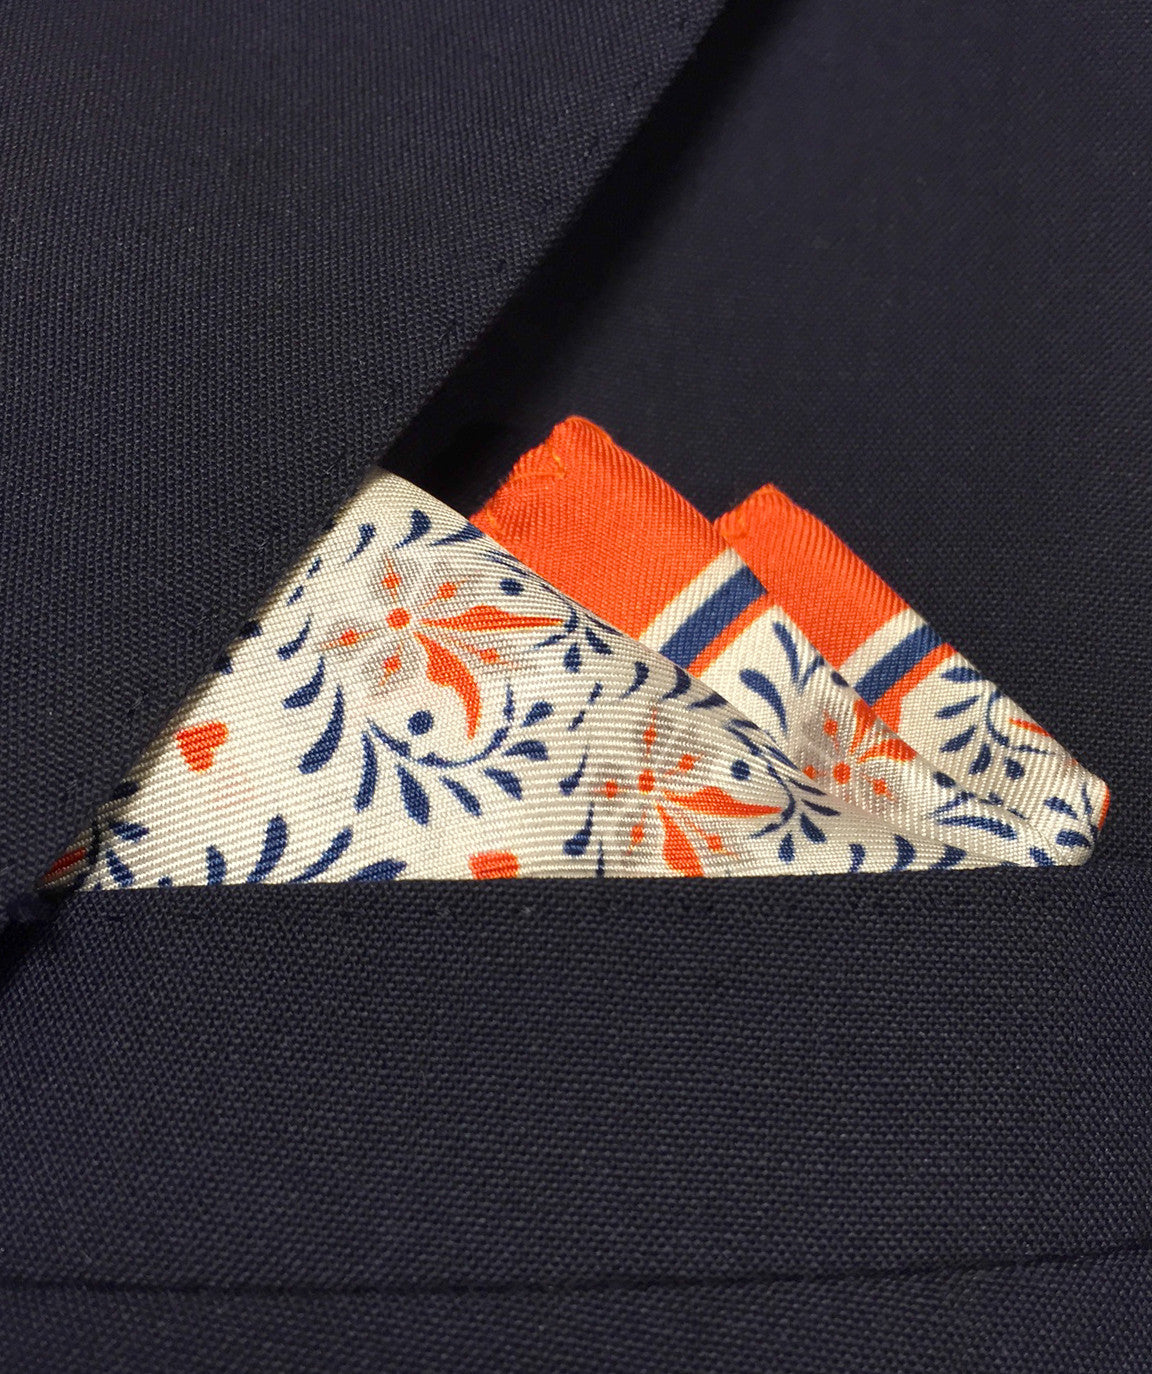 Saint V. Men's Pocket Square